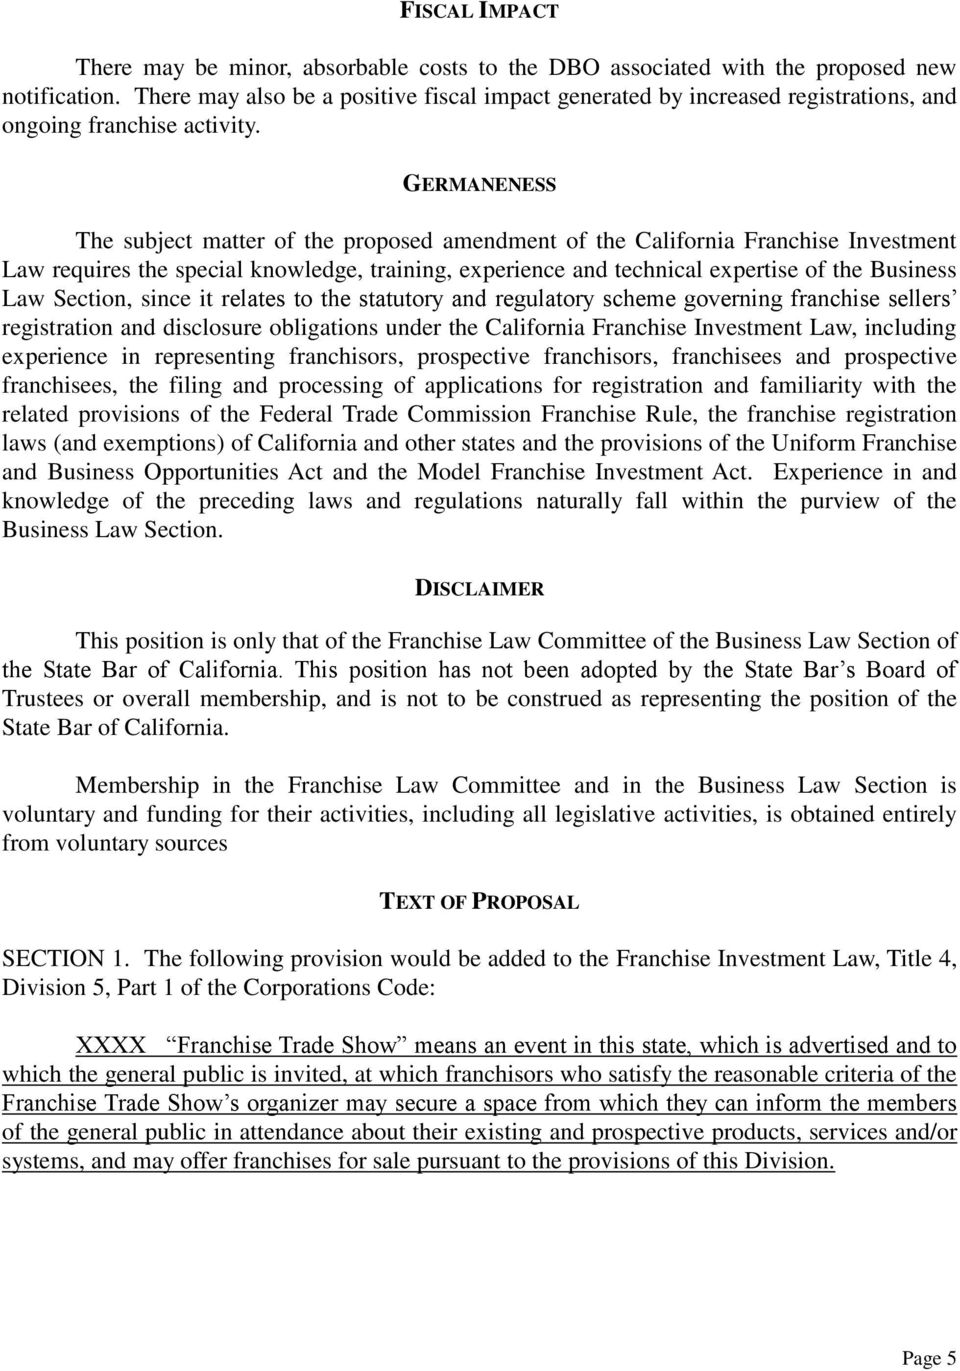 GERMANENESS The subject matter of the proposed amendment of the California Franchise Investment Law requires the special knowledge, training, experience and technical expertise of the Business Law